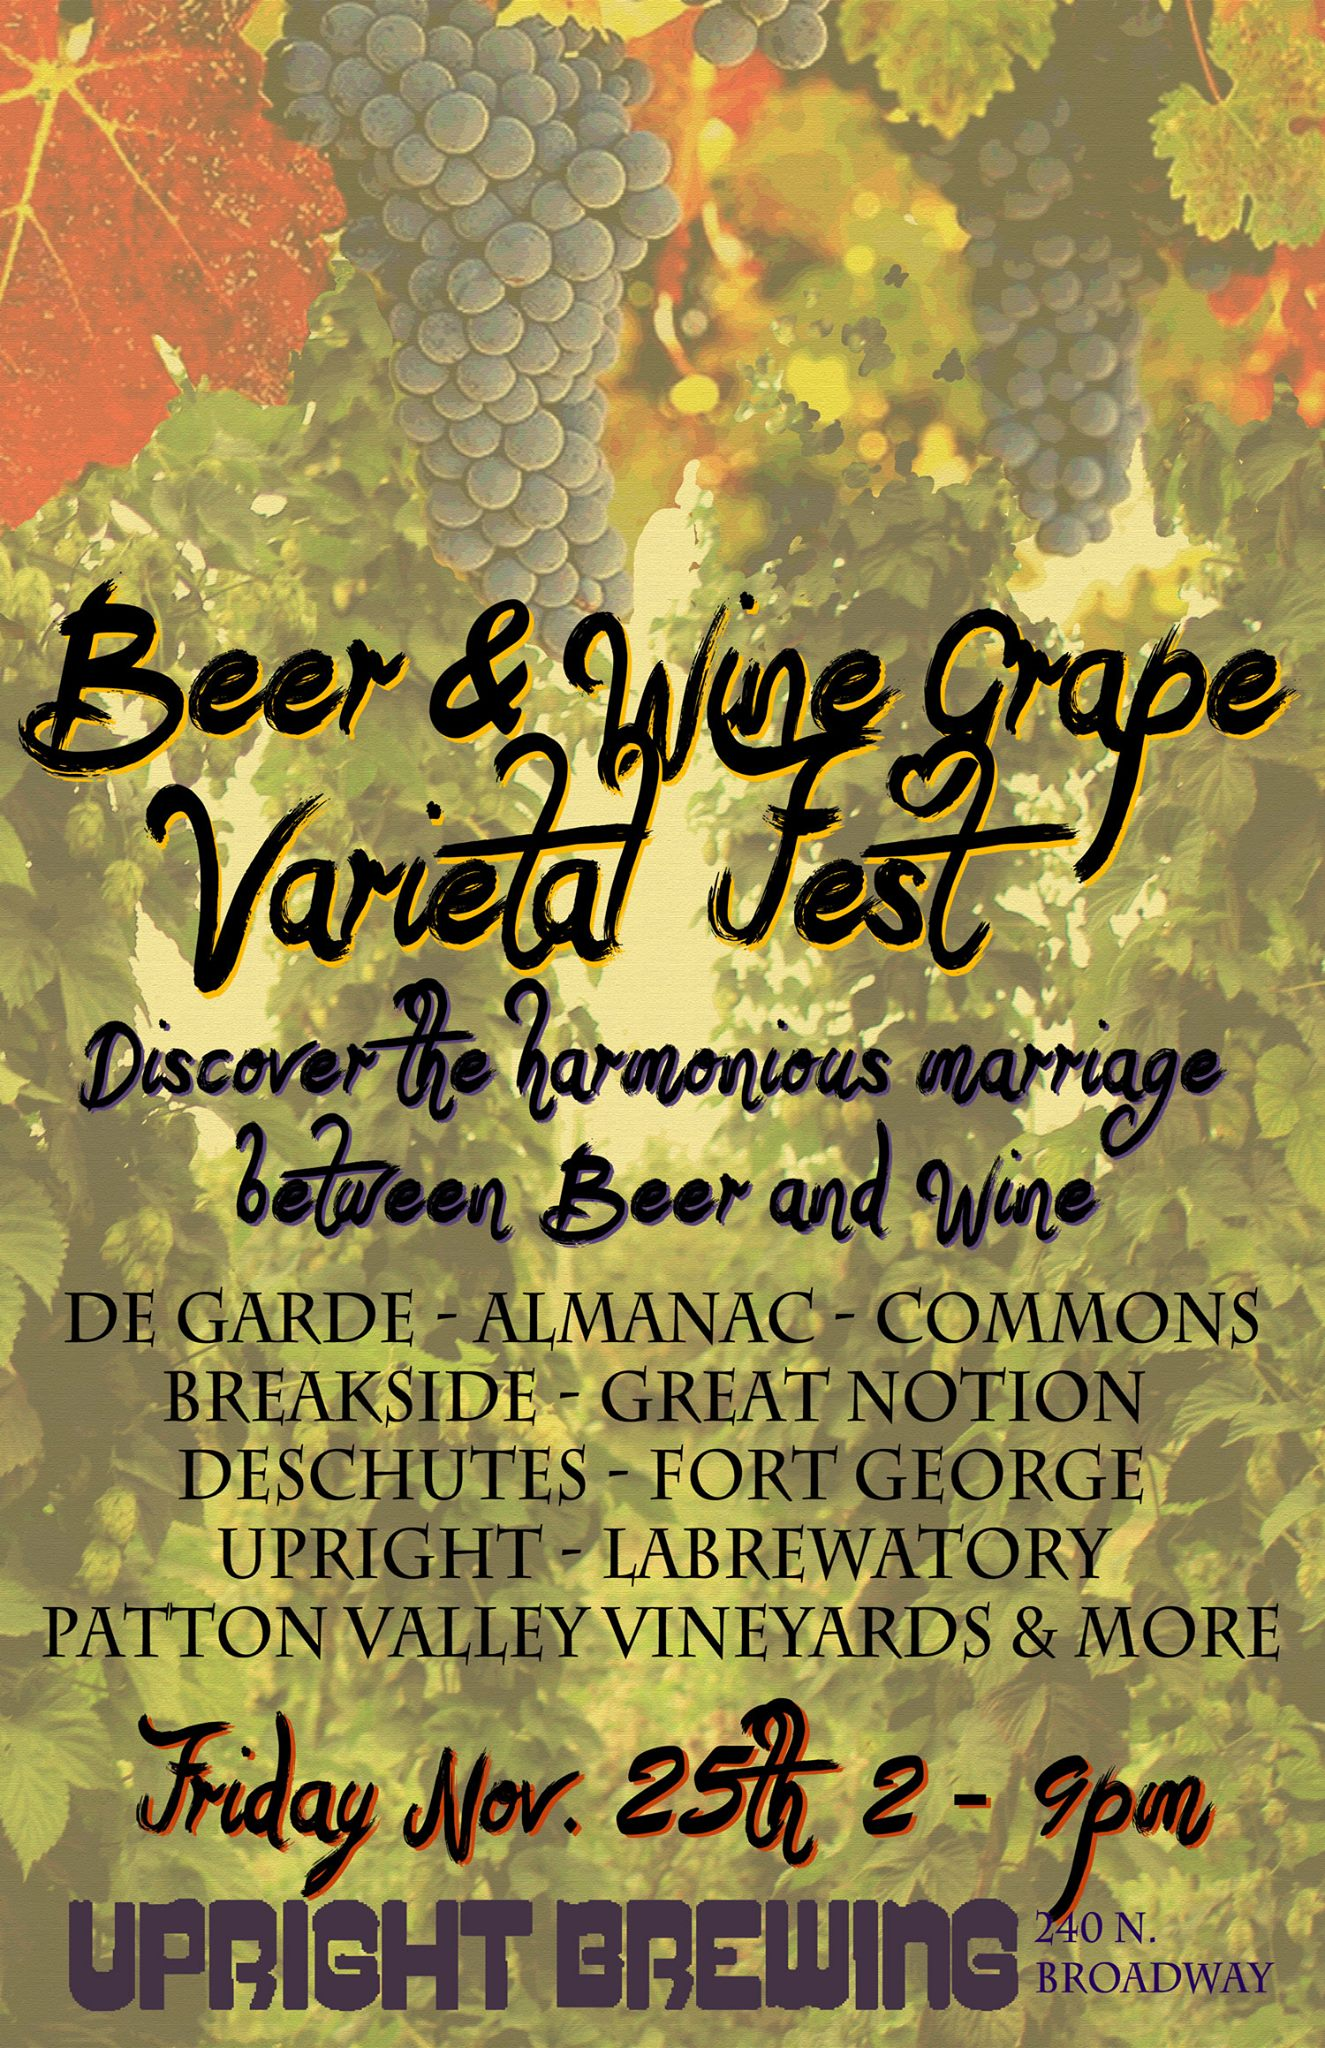 upright-brewing-beer-wine-grape-varietal-fest-2016